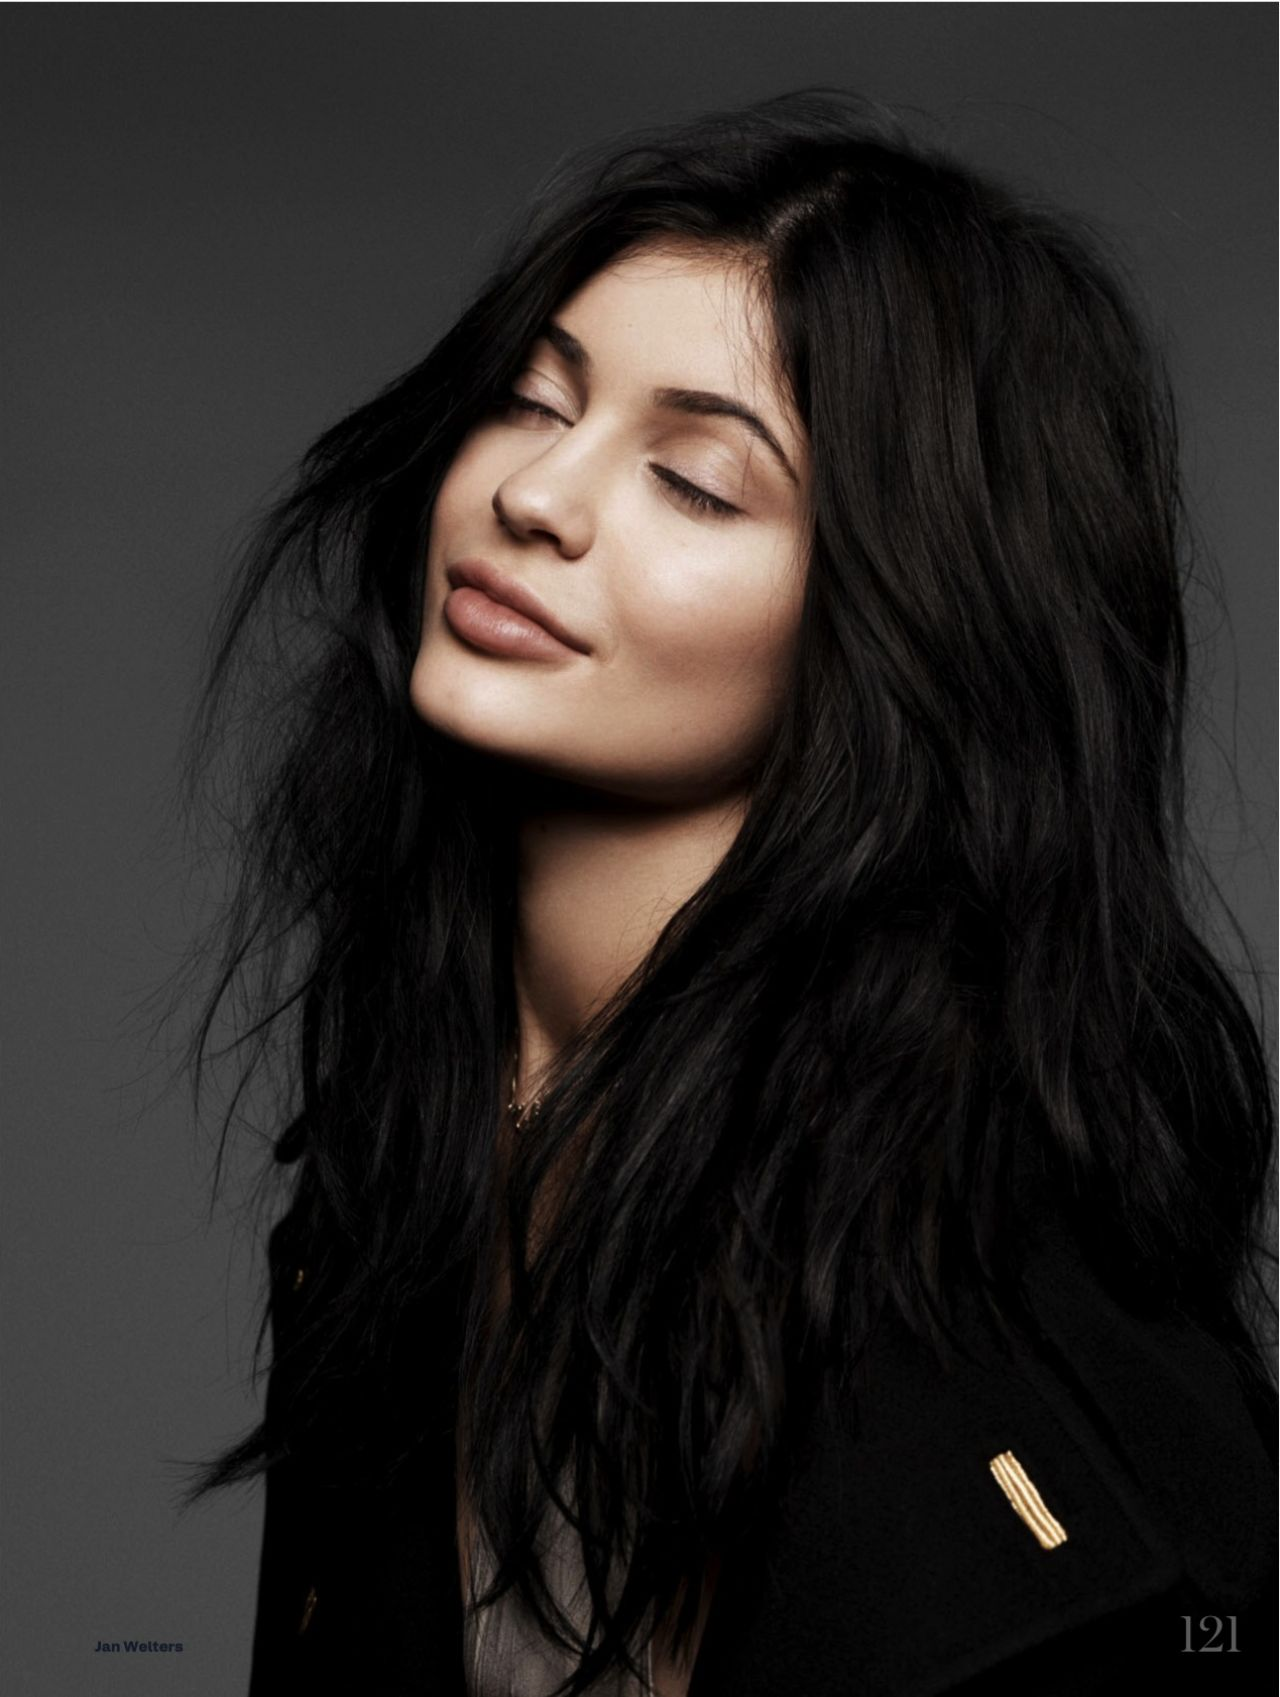 kylie jenner - photo #1